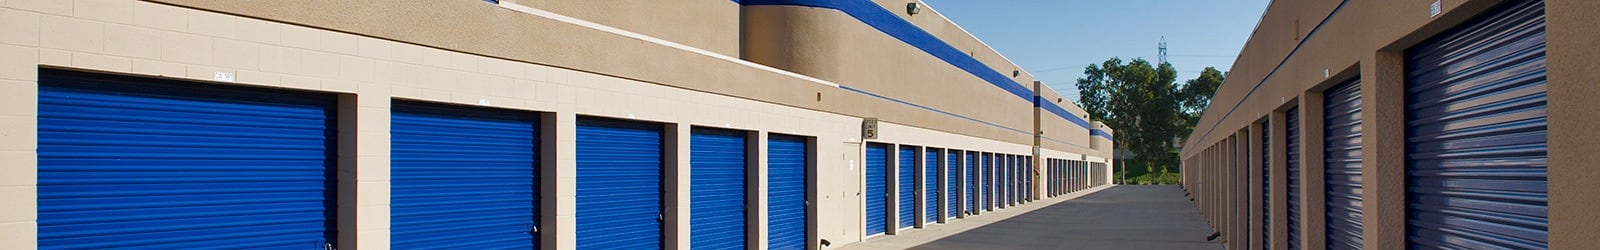 Mira Mesa Self Storage Unit Sizes and Prices